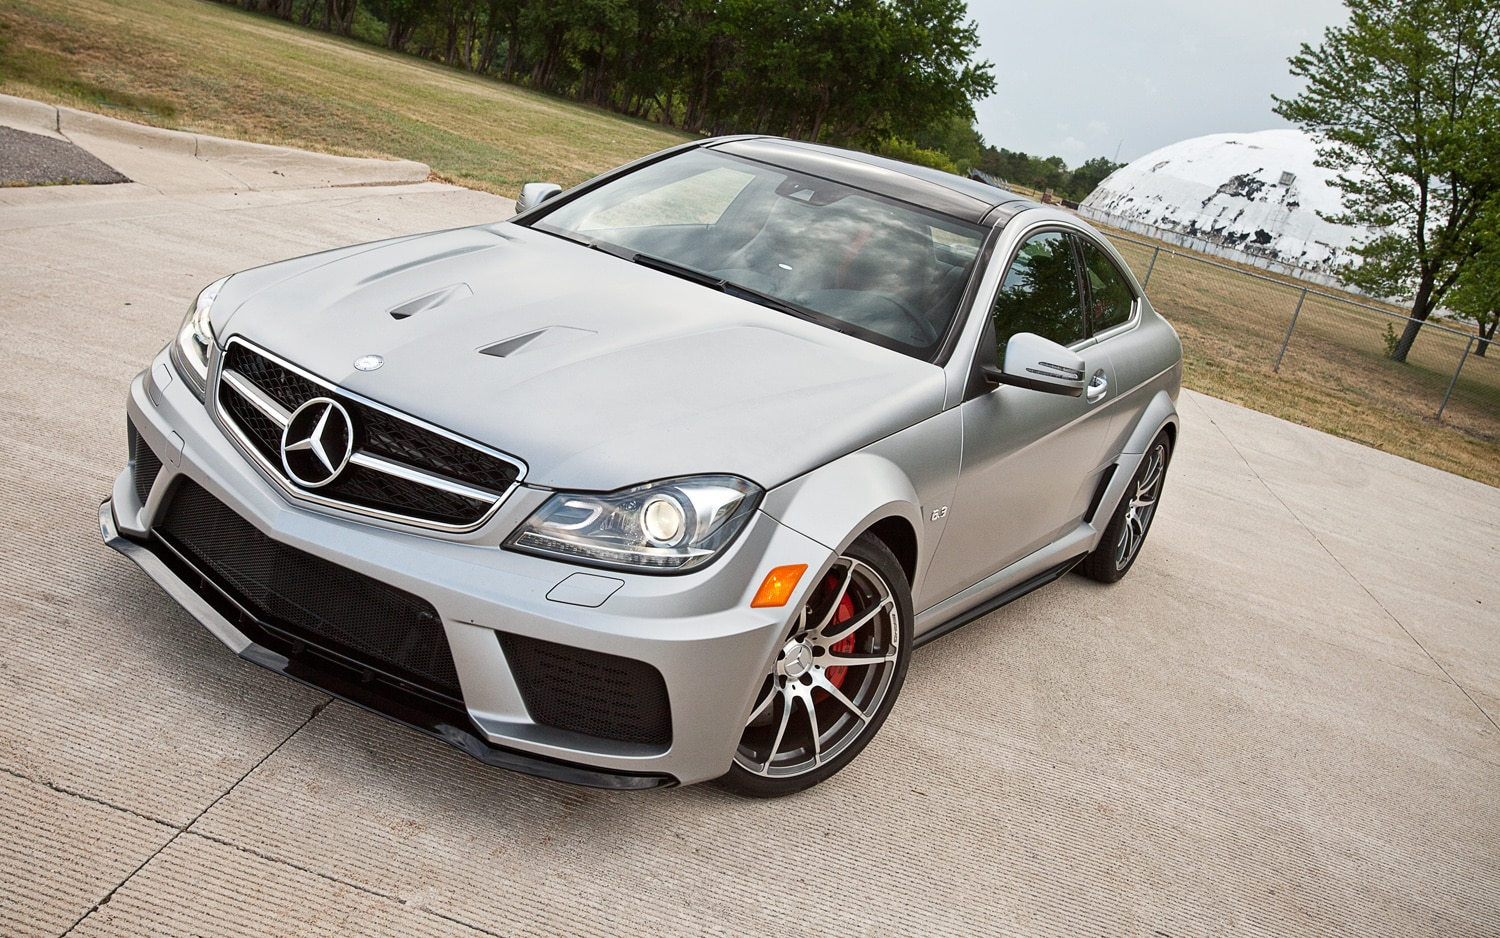 2012 Mercedes Benz C63 AMG Coupe Black Series Front Left View1